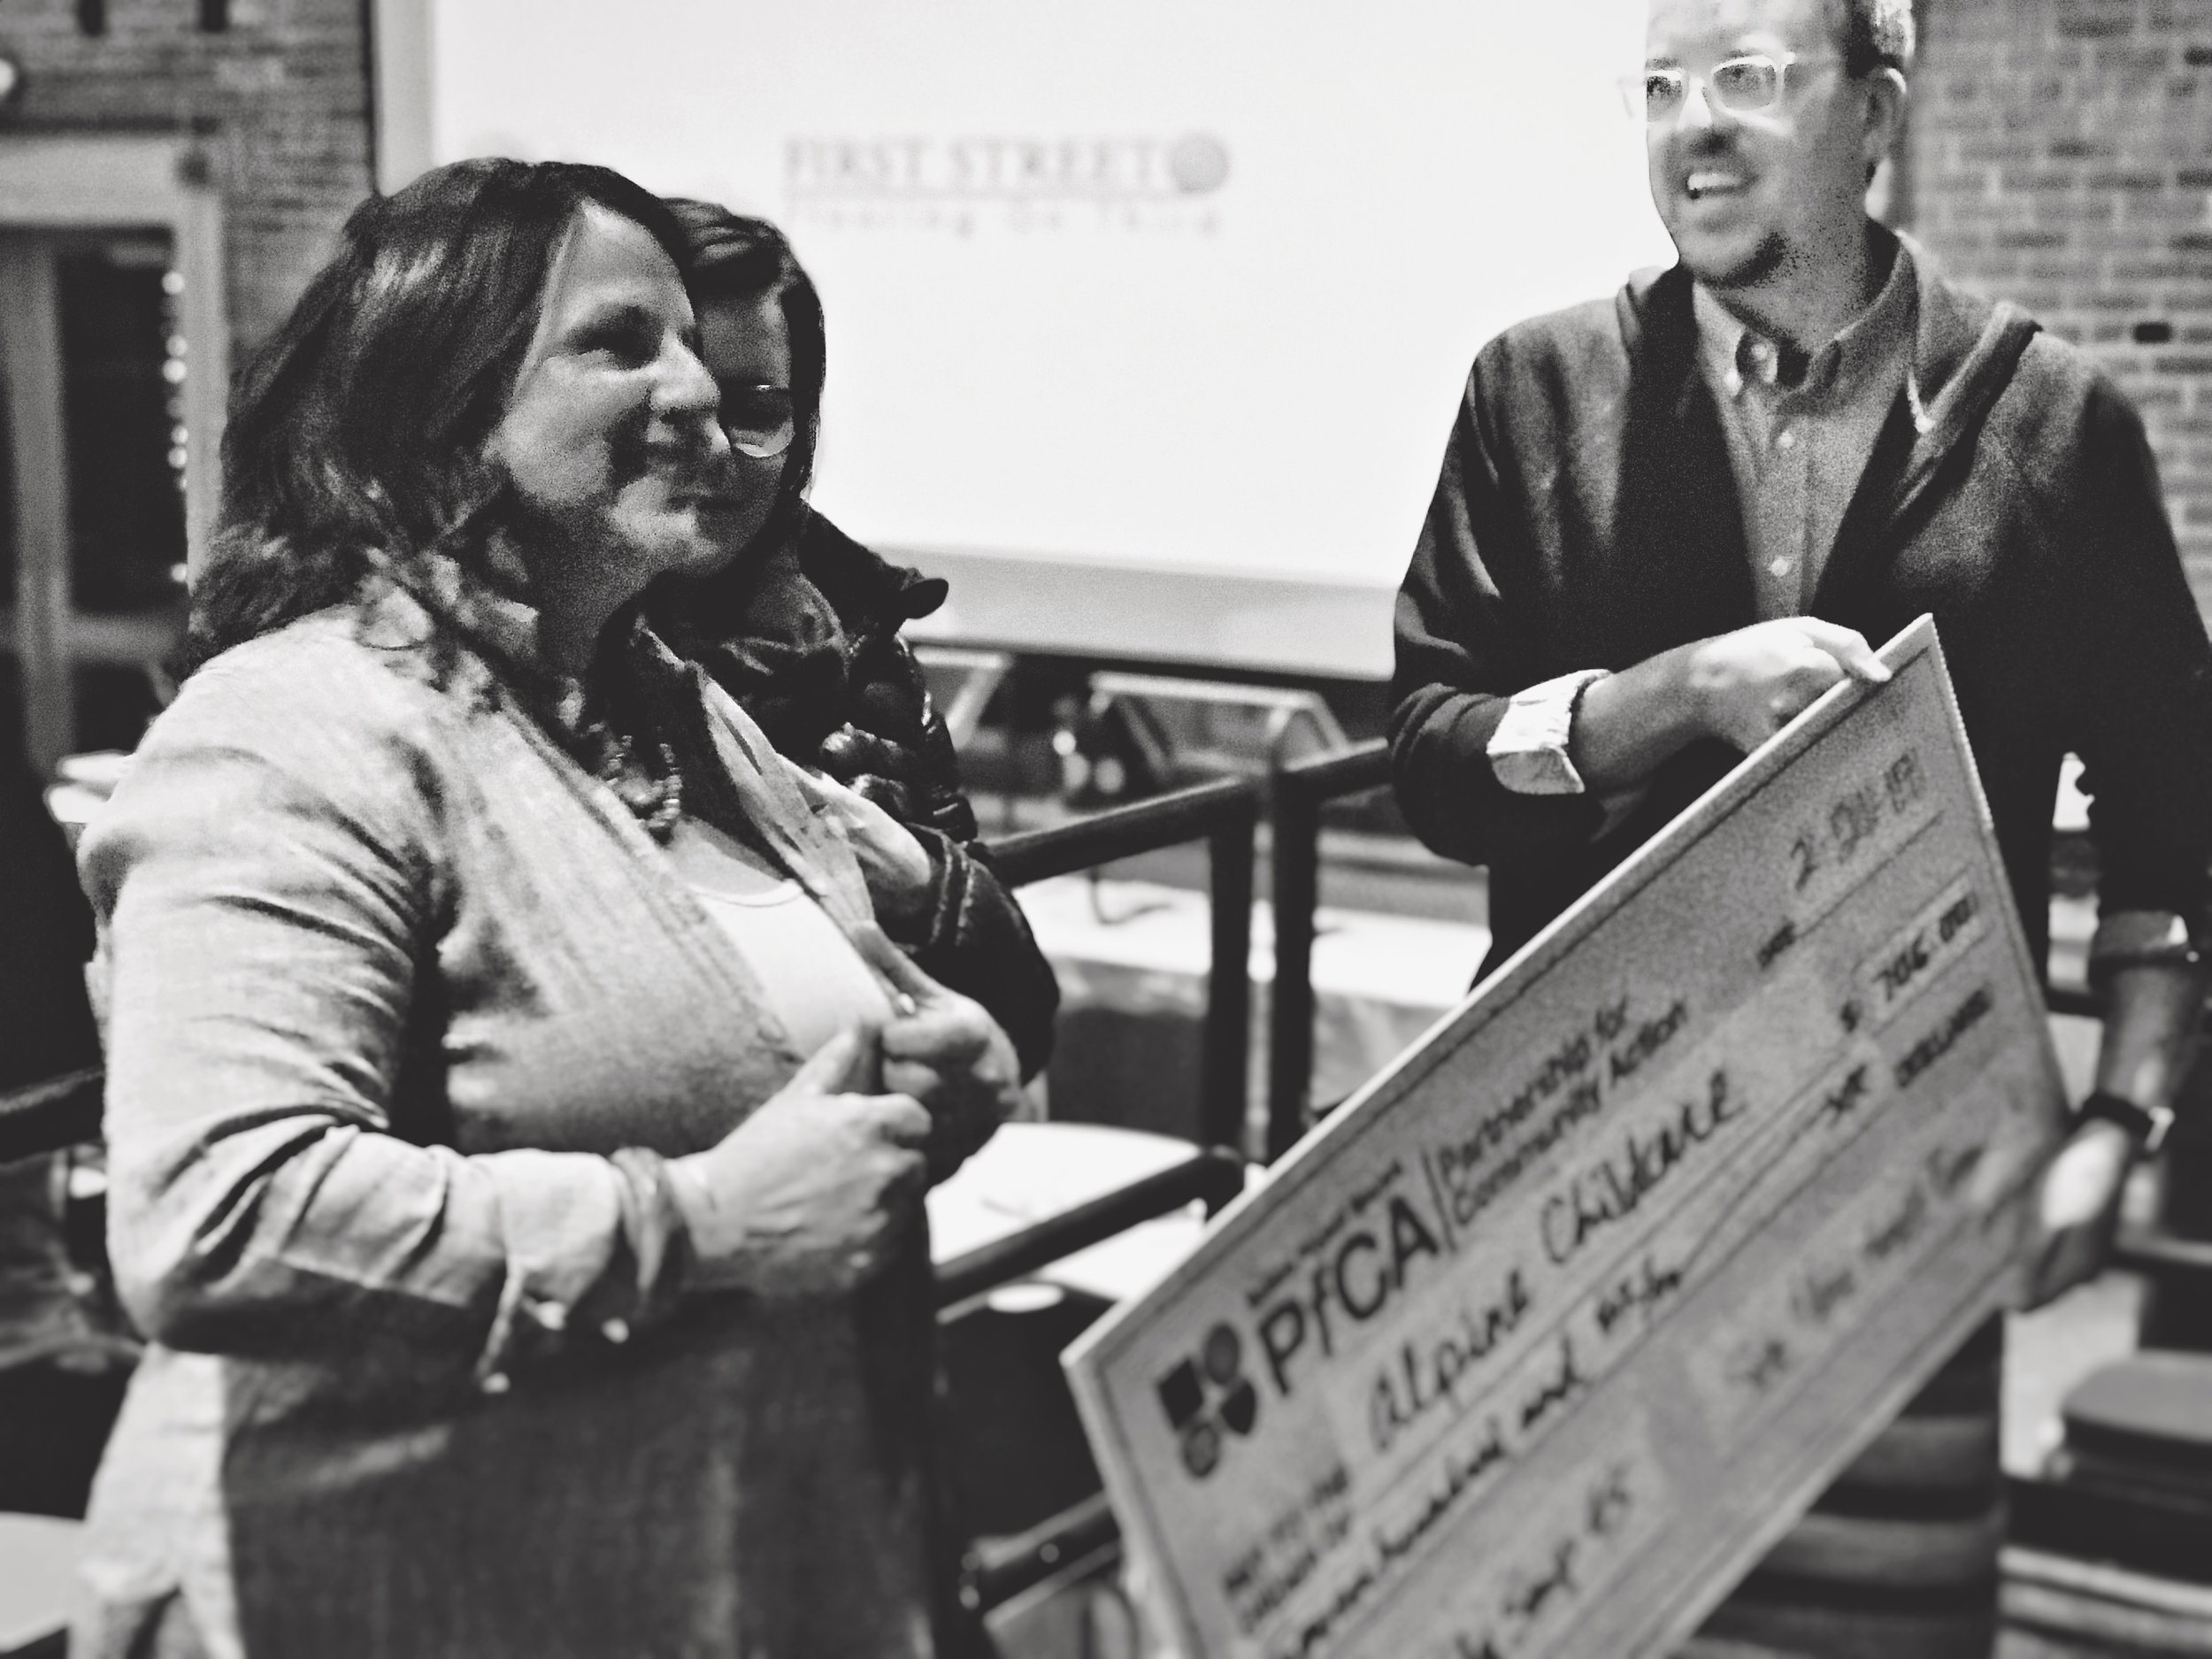 Kate McClelland, representing the group supporting the new center, with the Big Check after their win at Salida Soup 45 on February 21st.